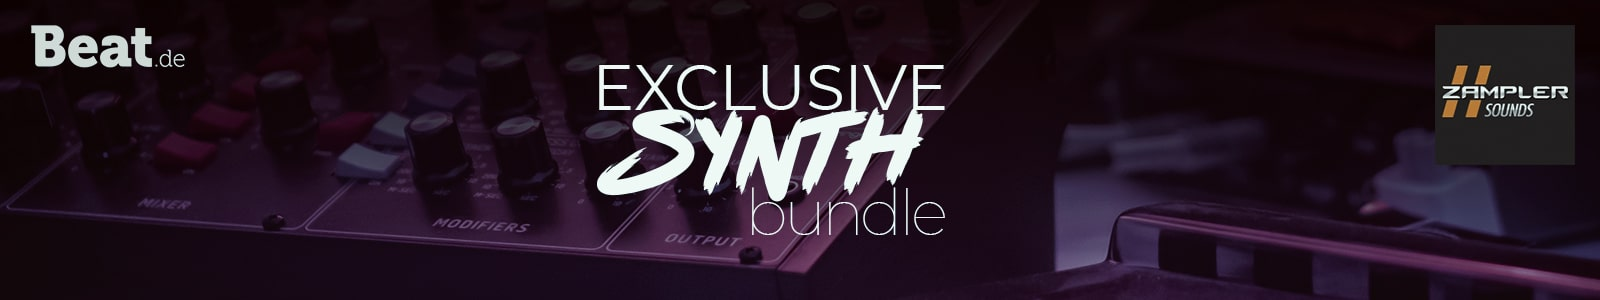 Exclusive Synth Bundle